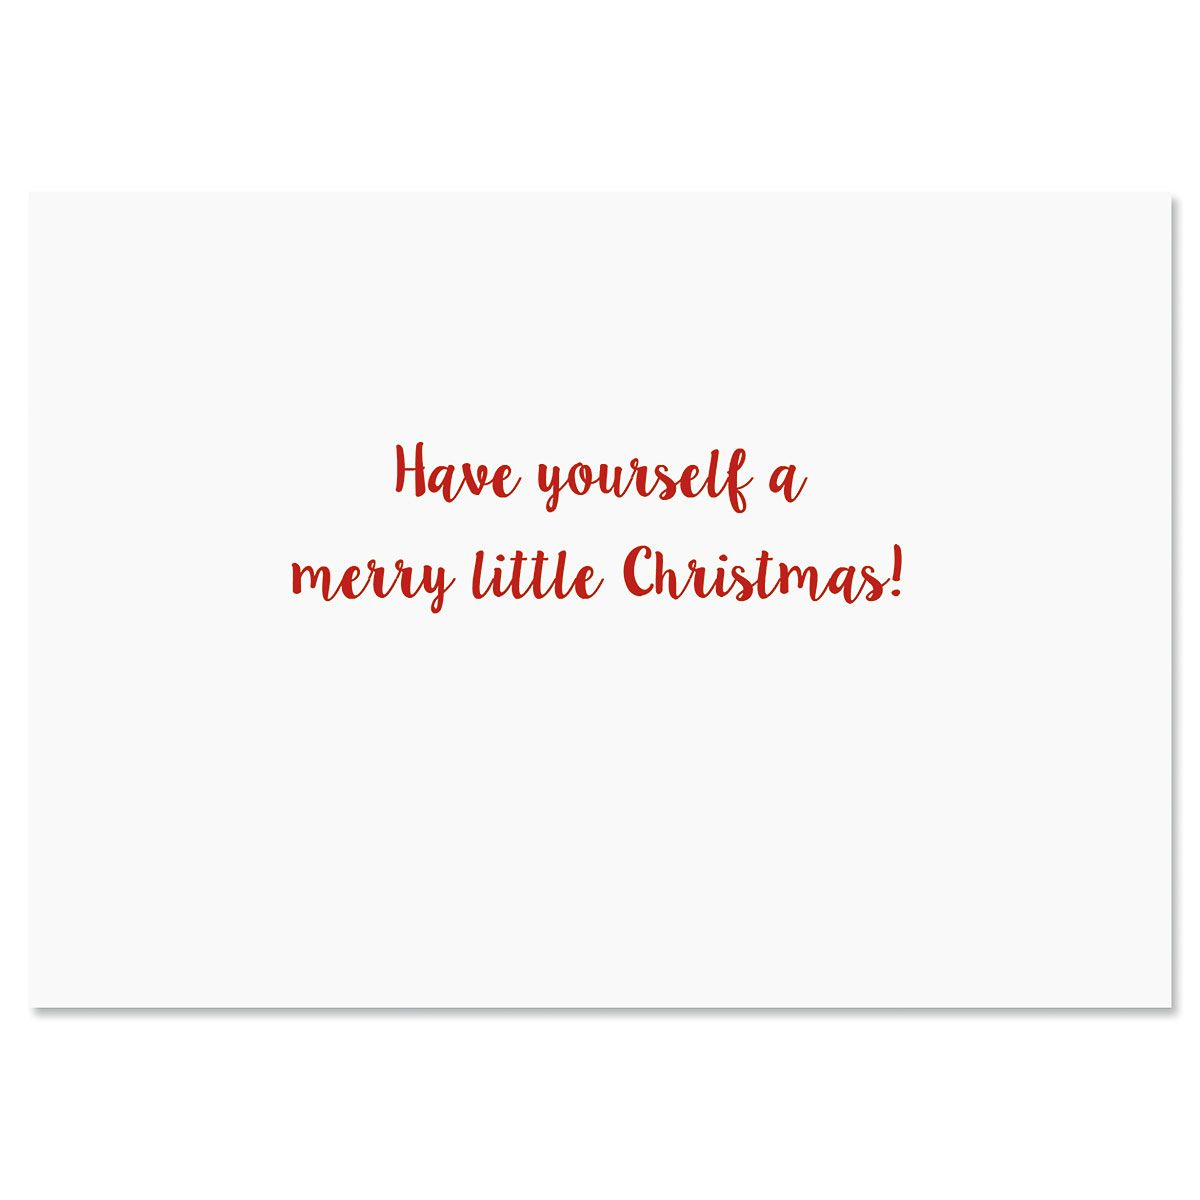 Merry Little Christmas Cards